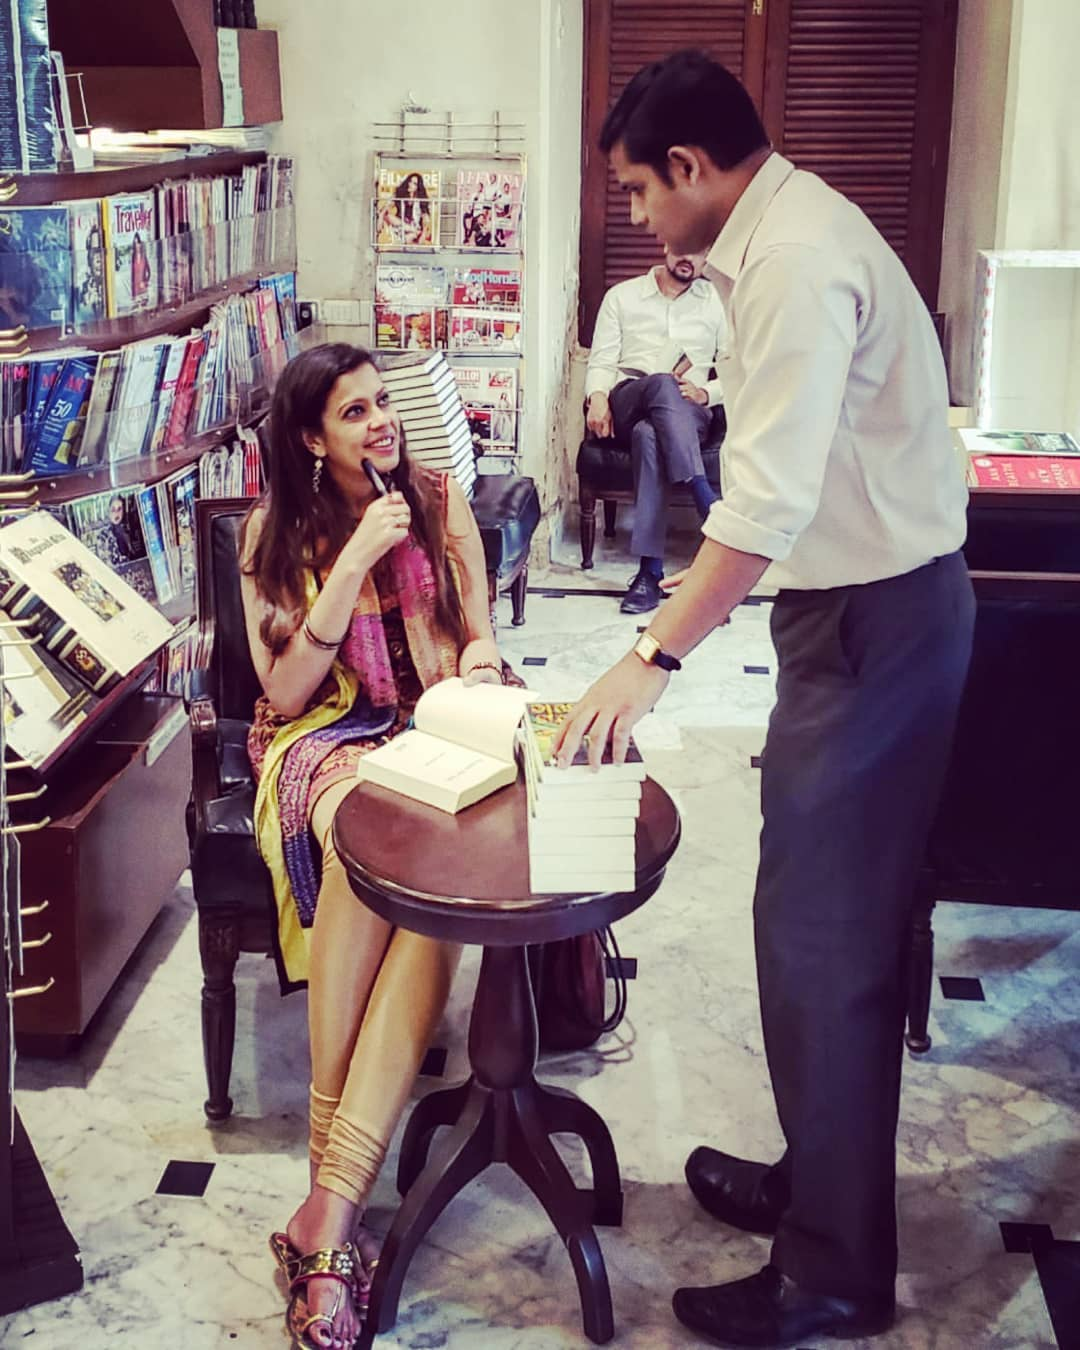 KITAB KHANA. MUMBAI. JAN. 2019. - A candid moment captured while signing copies of the bestselling VICTIMS FOR SALE at Mumbai's legacy standalone bookstore, KITAB KHANA.KEYWORDS: Kitab Khana, South Mumbai, South Bombay, Marine Drive Mumbai, Fort Mumbai, authors in Mumbai, Mumbai, Bombay, bookstores, book signing, Nish Amarnath, Nischinta Amarnath, Victims For Sale